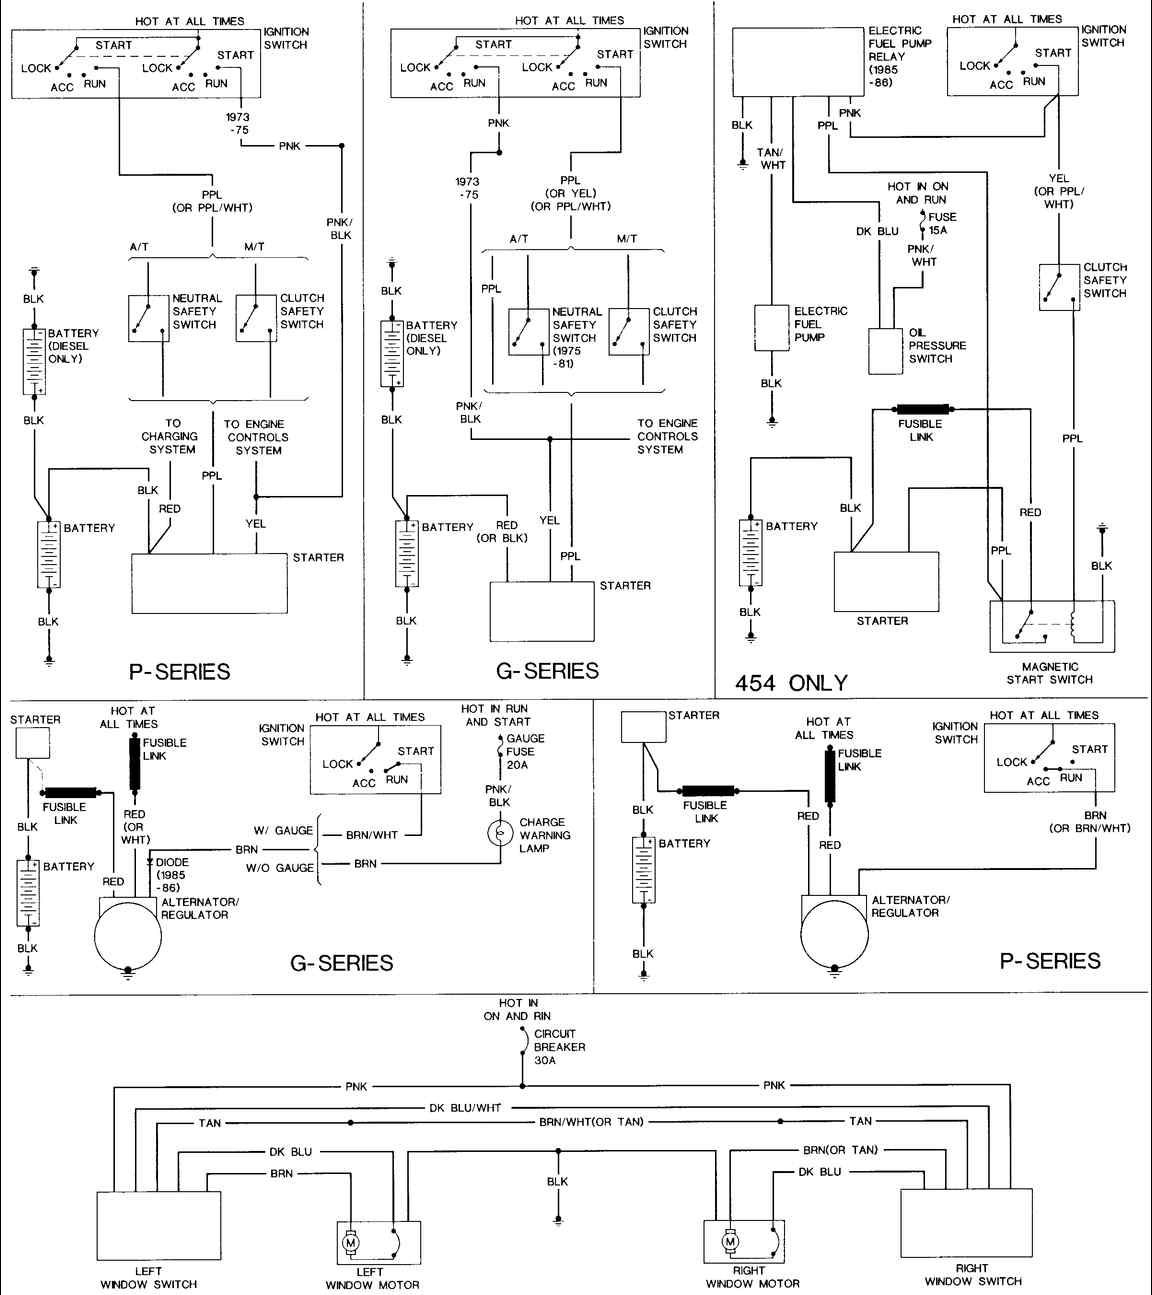 0c73623a181dc376dbb4777e2029d285 85 chevy truck wiring diagram 85 chevy van the steering column 1985 chevy truck wiring diagram at nearapp.co